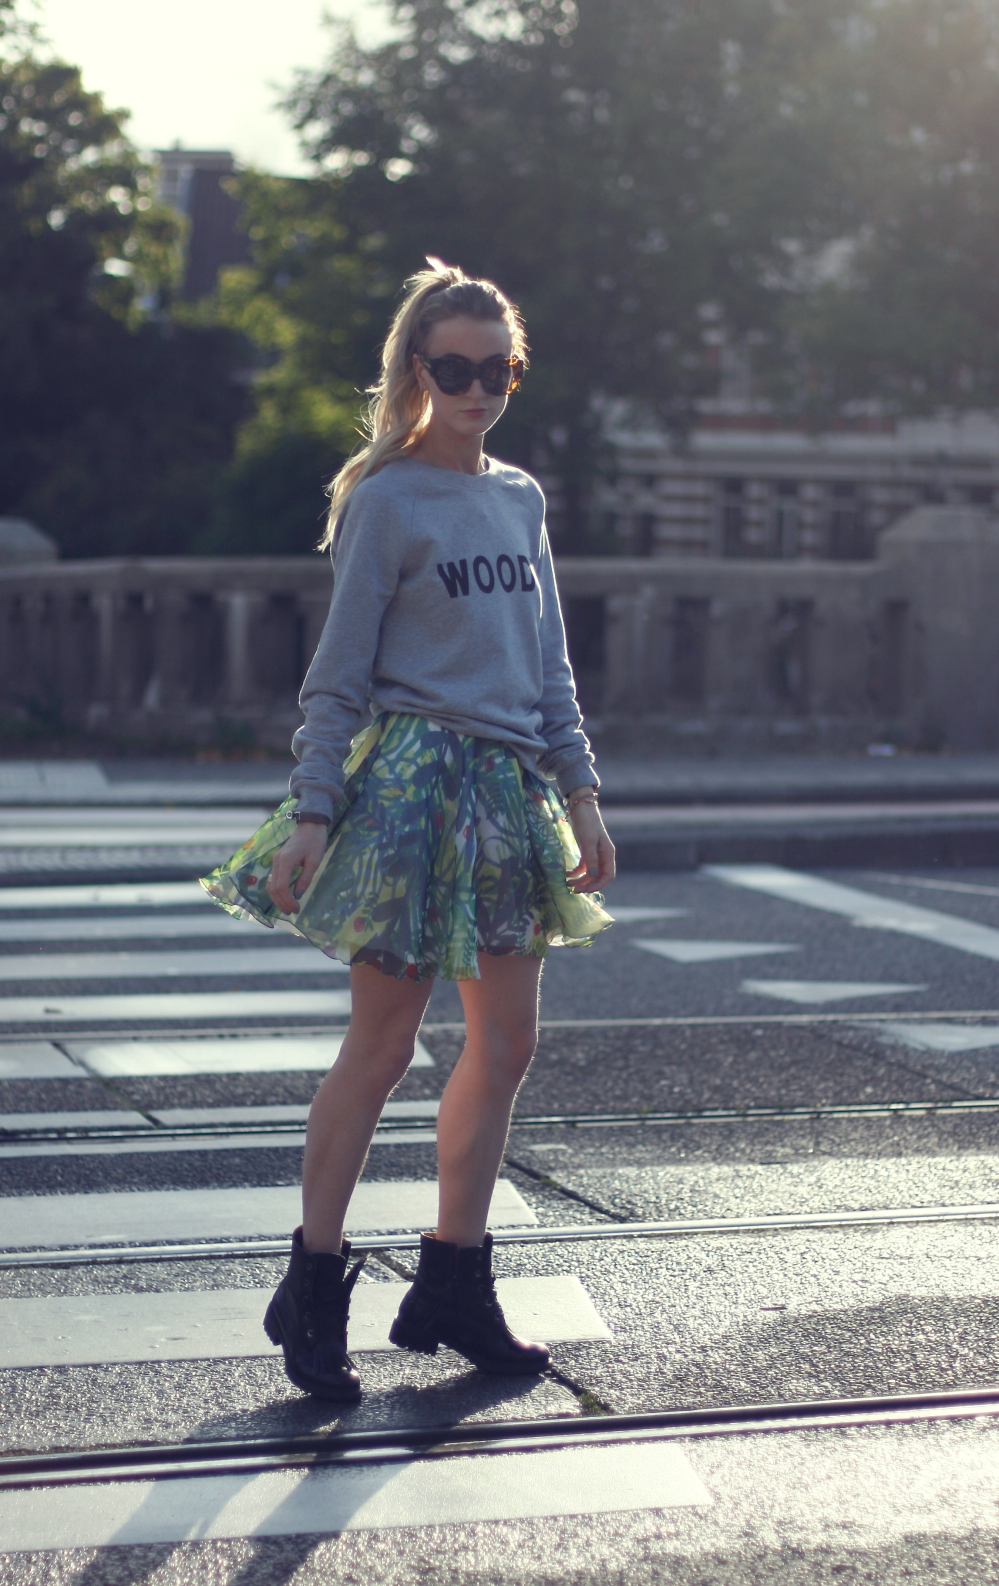 skirt zalando fashion blogger